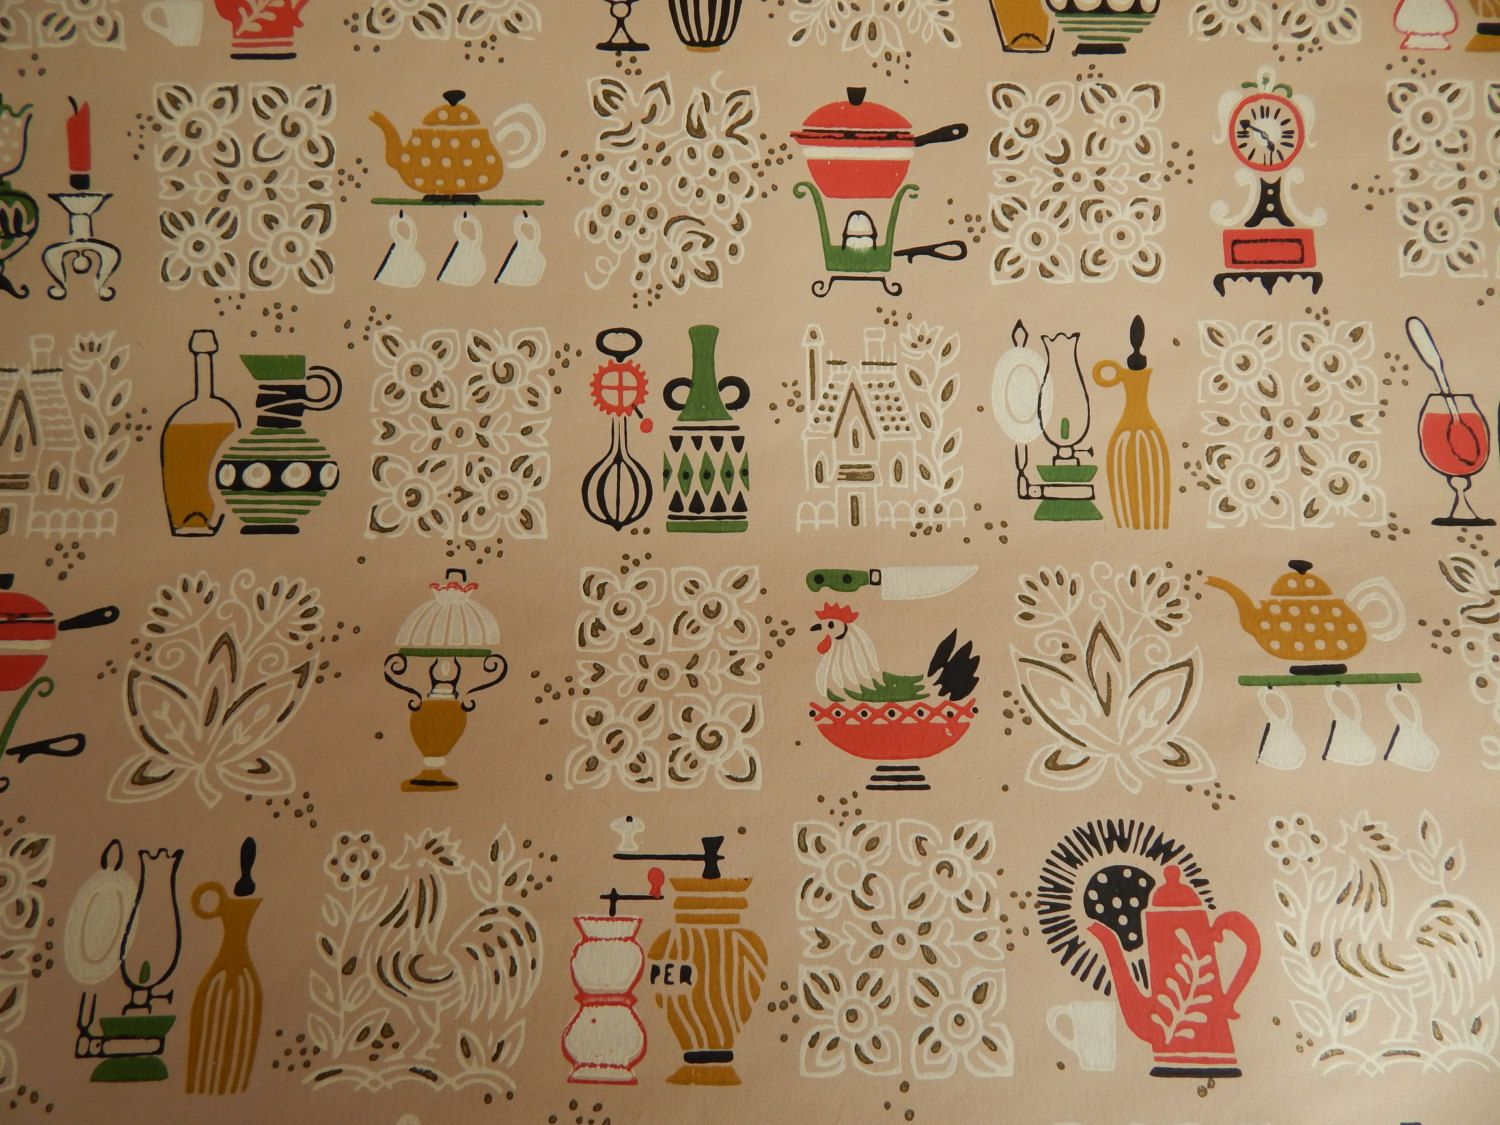 1950s Kitchen Wallpaper Pale Peach Pink With By Solachristine Kitchen Wallpaper 1950s Kitchen Wallpaper 1950s Wallpaper